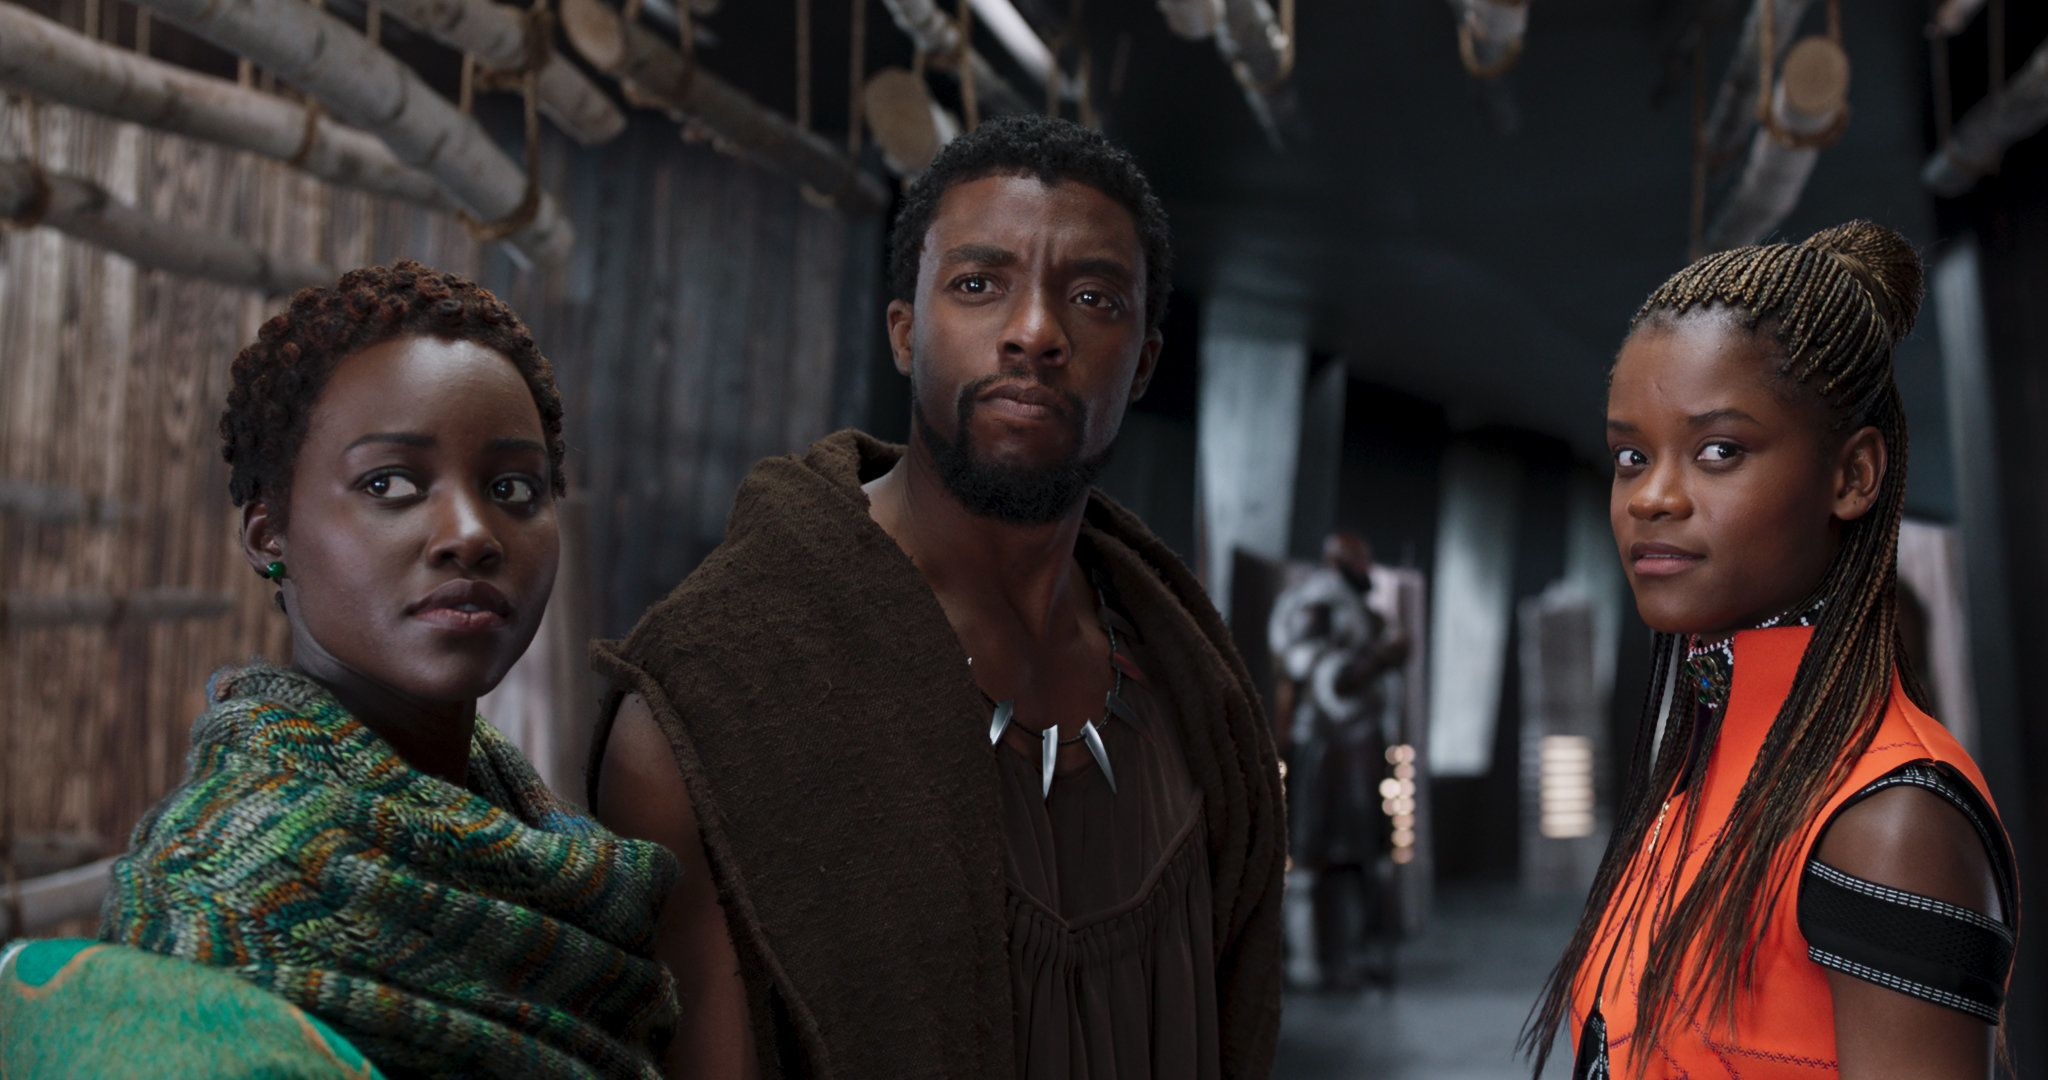 The 2019 Oscar Letdown: 'Black Panther' And 'A Star Is Born' Are Dark Horses